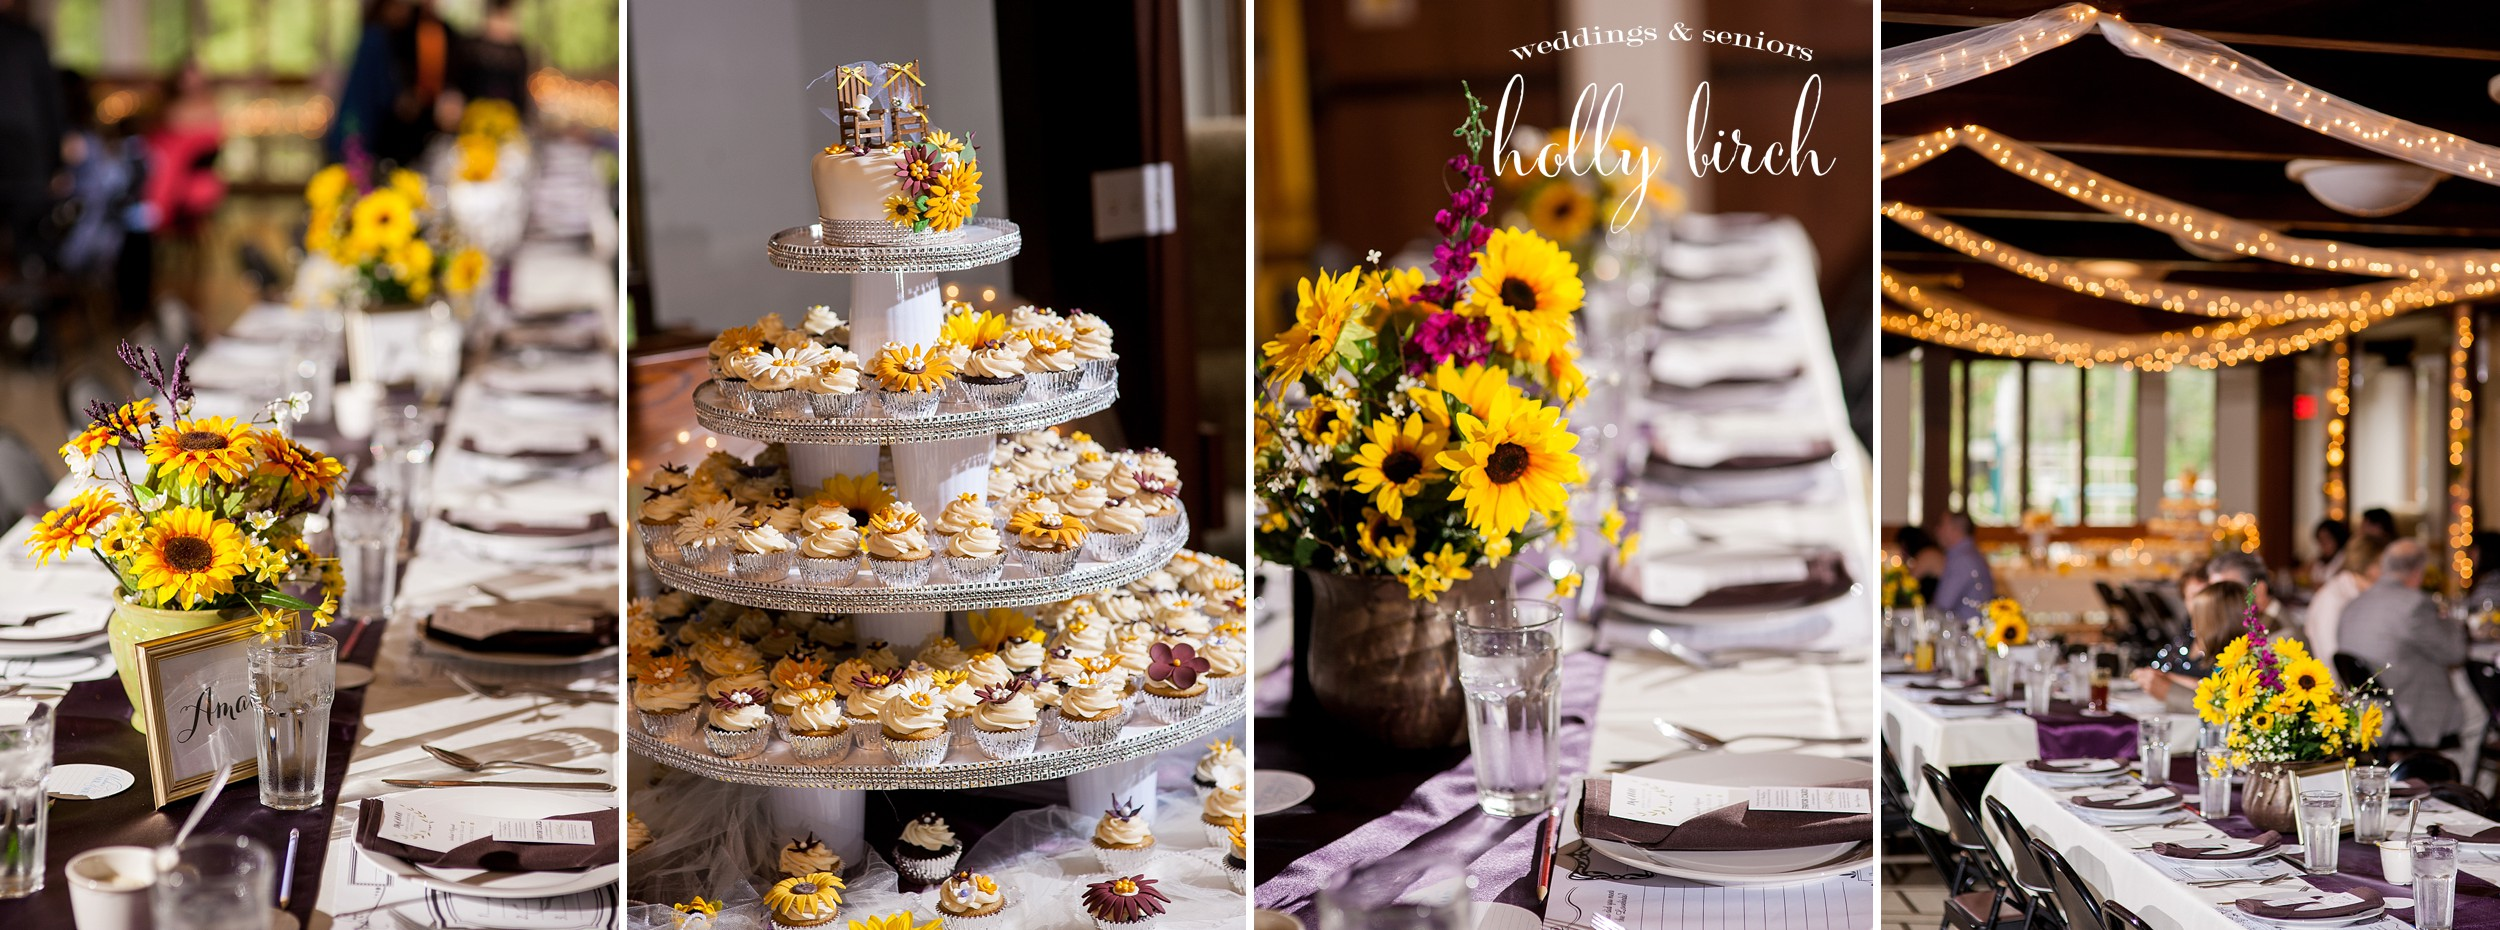 sunflower theme with cake and centerpieces